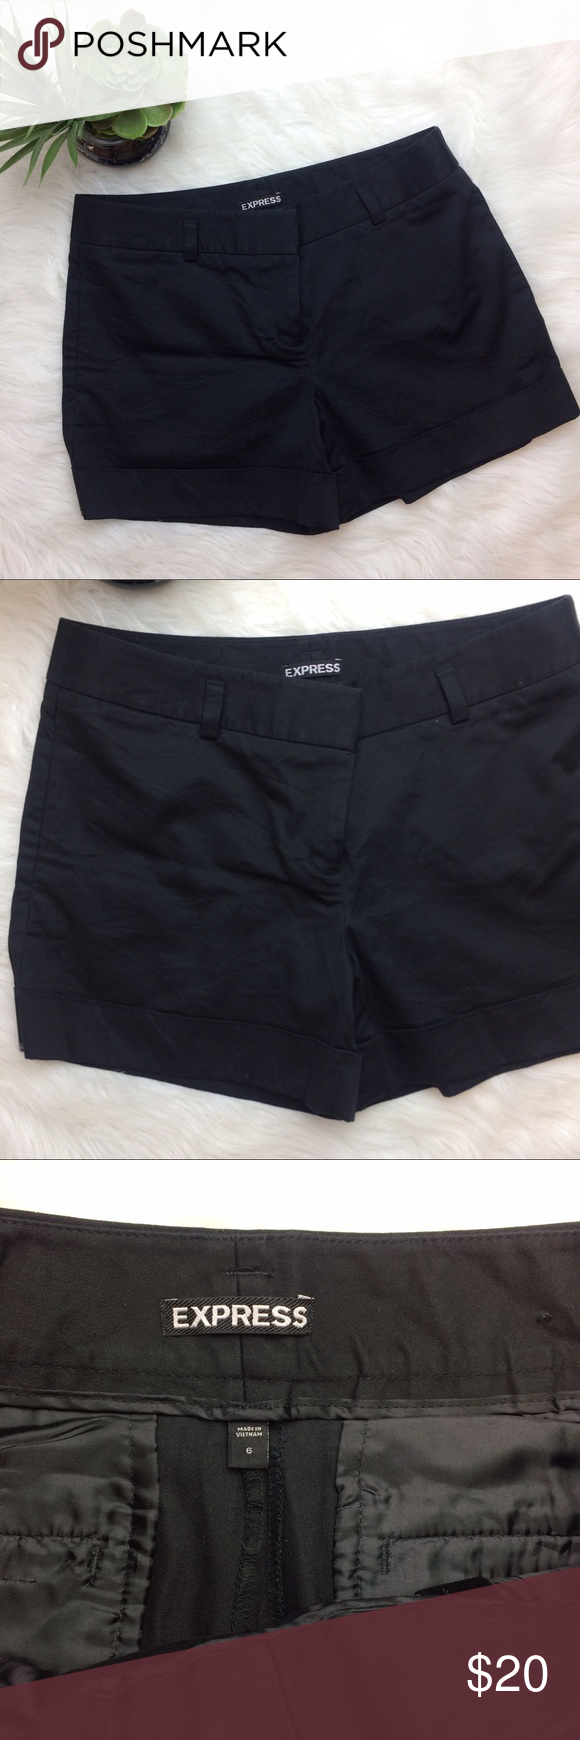 "Express Black Shorts Express Black shorts. So soft. 99% cotton, 1% spandex. Flat front. Size 6. Waist is 16.5"". Inseam is 4 1/4"". Express Shorts"